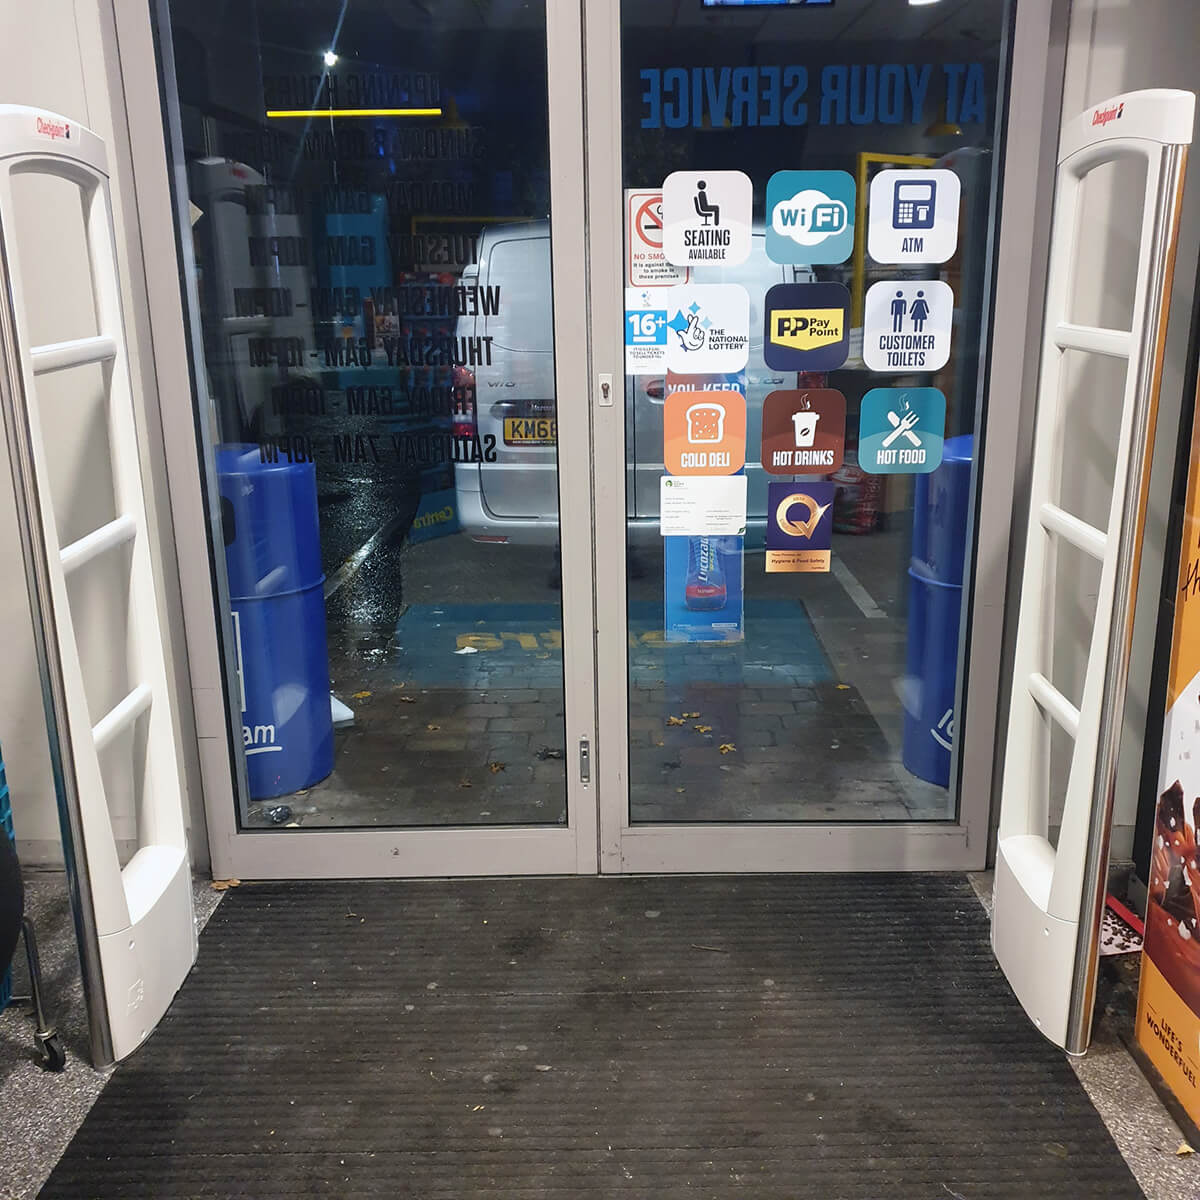 Theft Prevention with security antennas and EAS Tags at Centra Craigavon